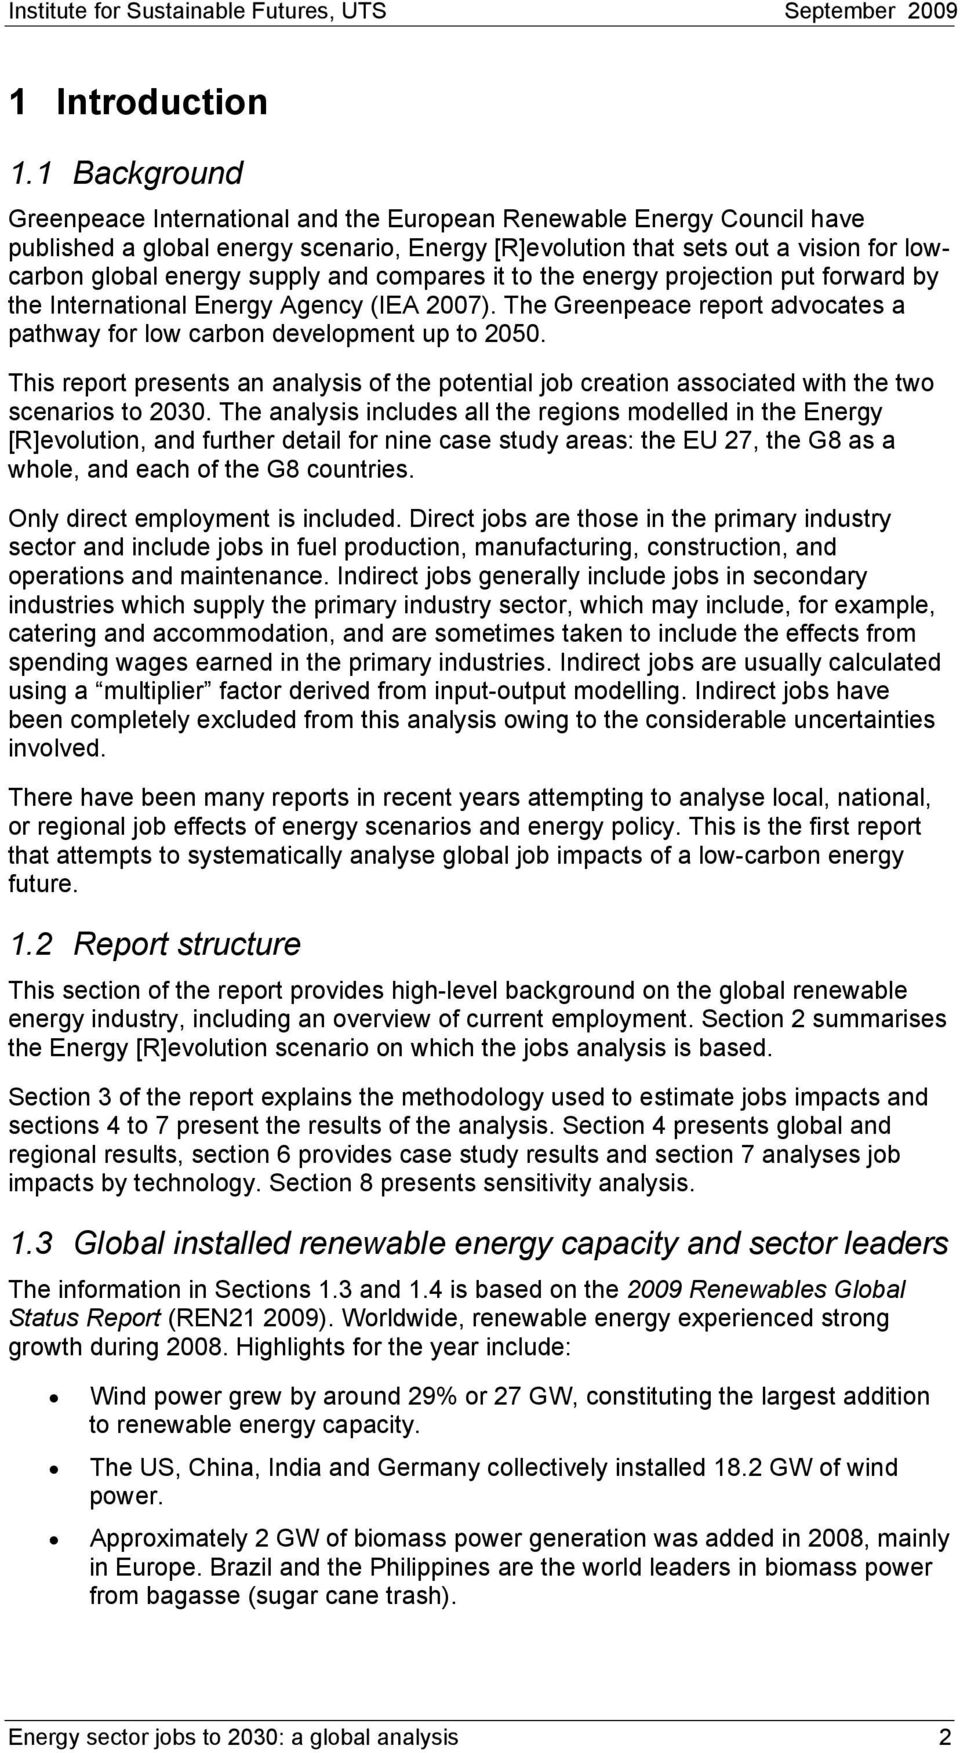 it to the energy projection put forward by the International Energy Agency (IEA 2007). The Greenpeace report advocates a pathway for low carbon development up to 2050.